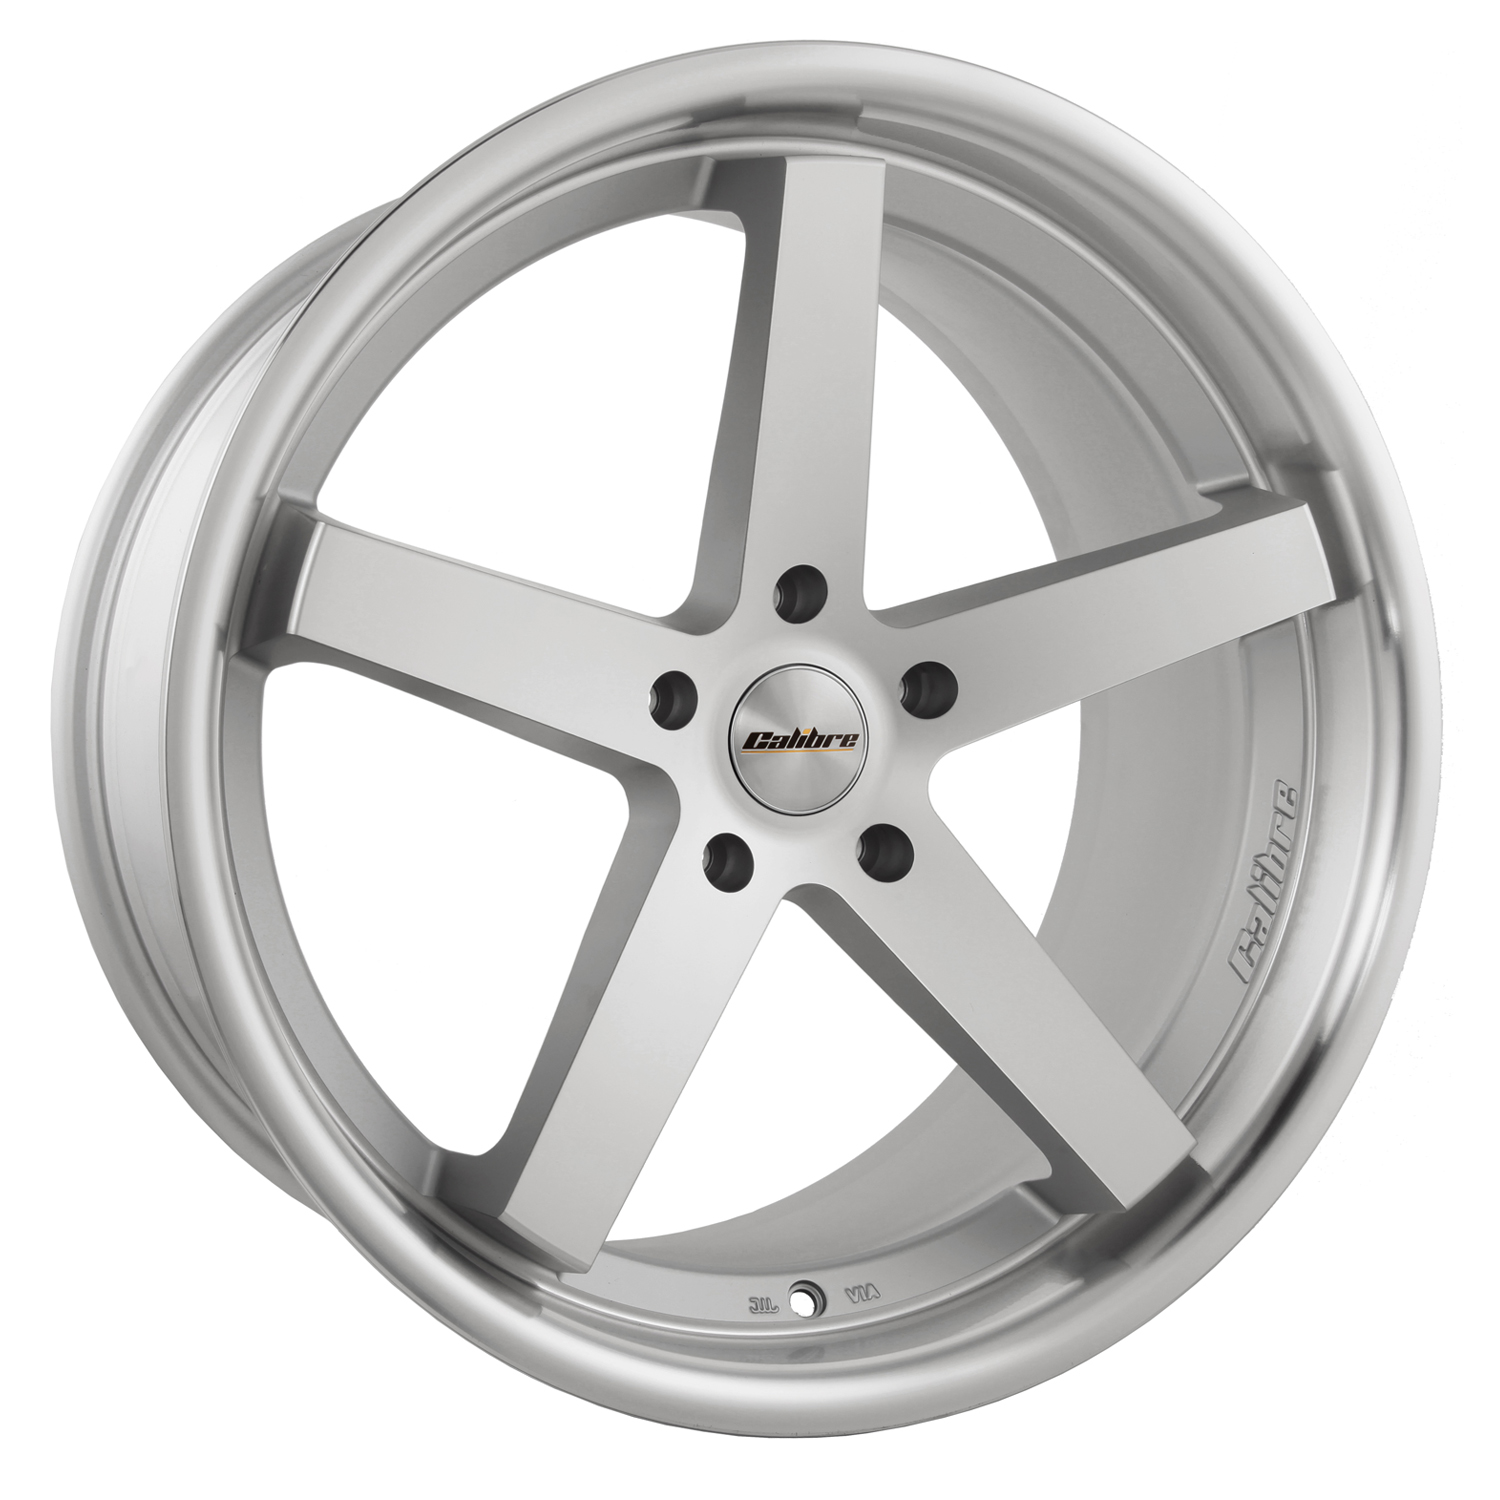 "NEW 20"" CALIBRE CC-V ALLOYS IN MATT SILVER WITH POLISHED LIP, BIG CONCAVE 10"" REAR, et28/35 front - et28/35 rear"